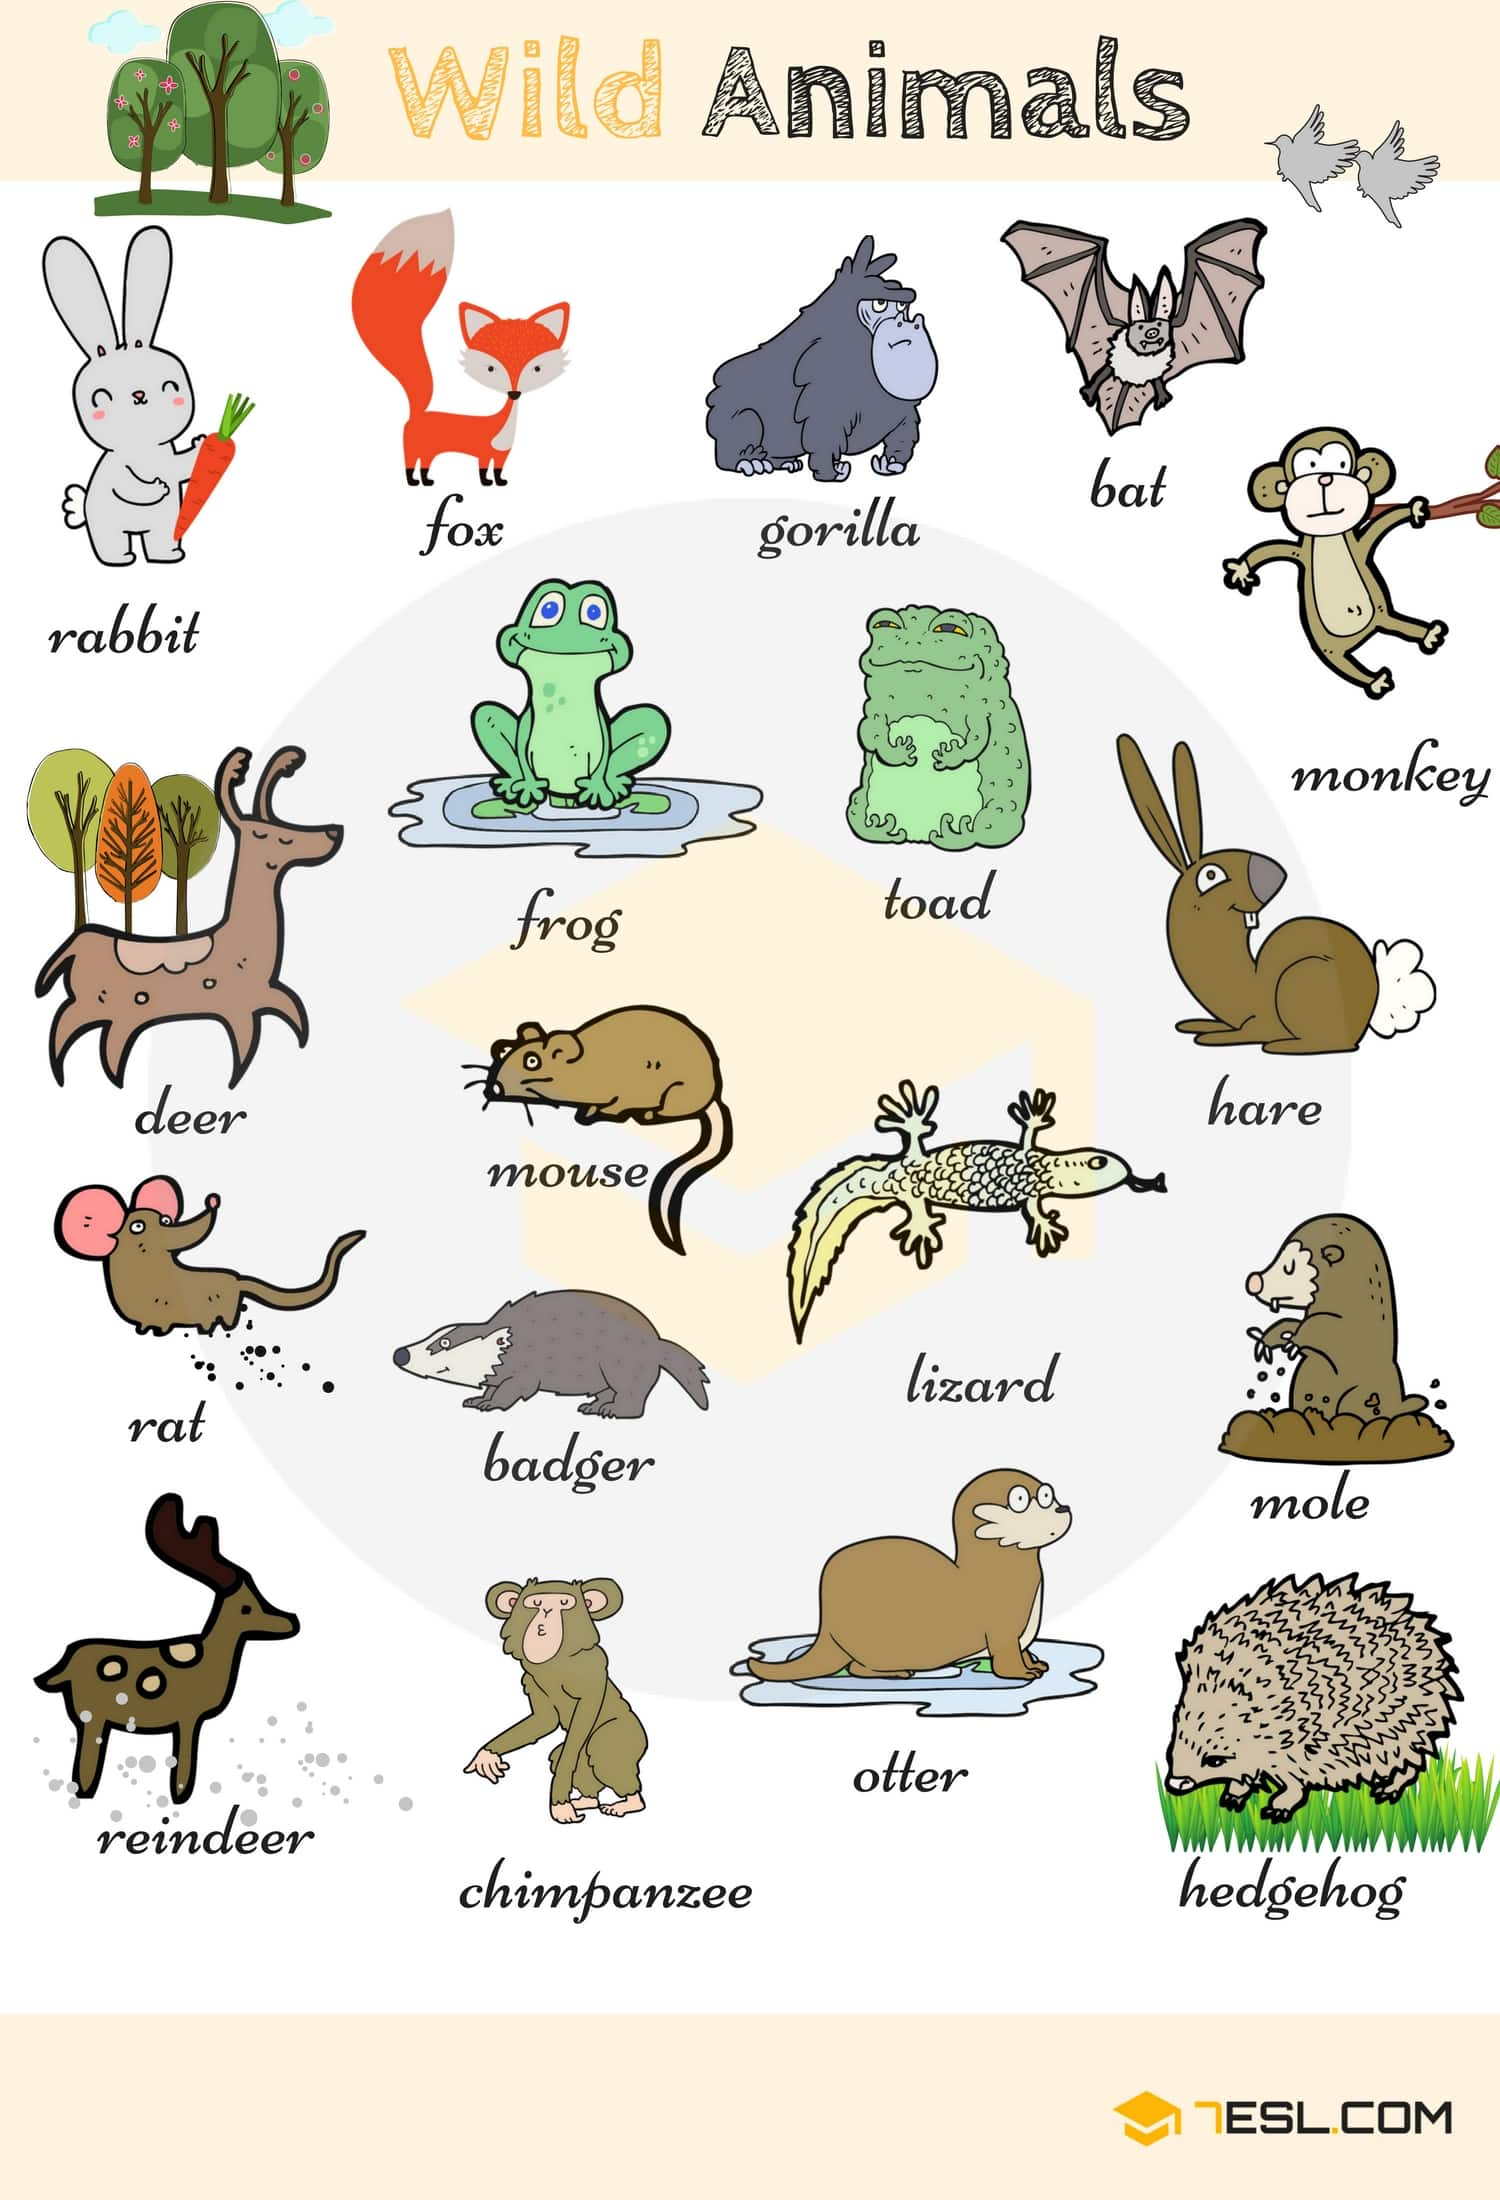 Wild Animal Vocabulary in English 1